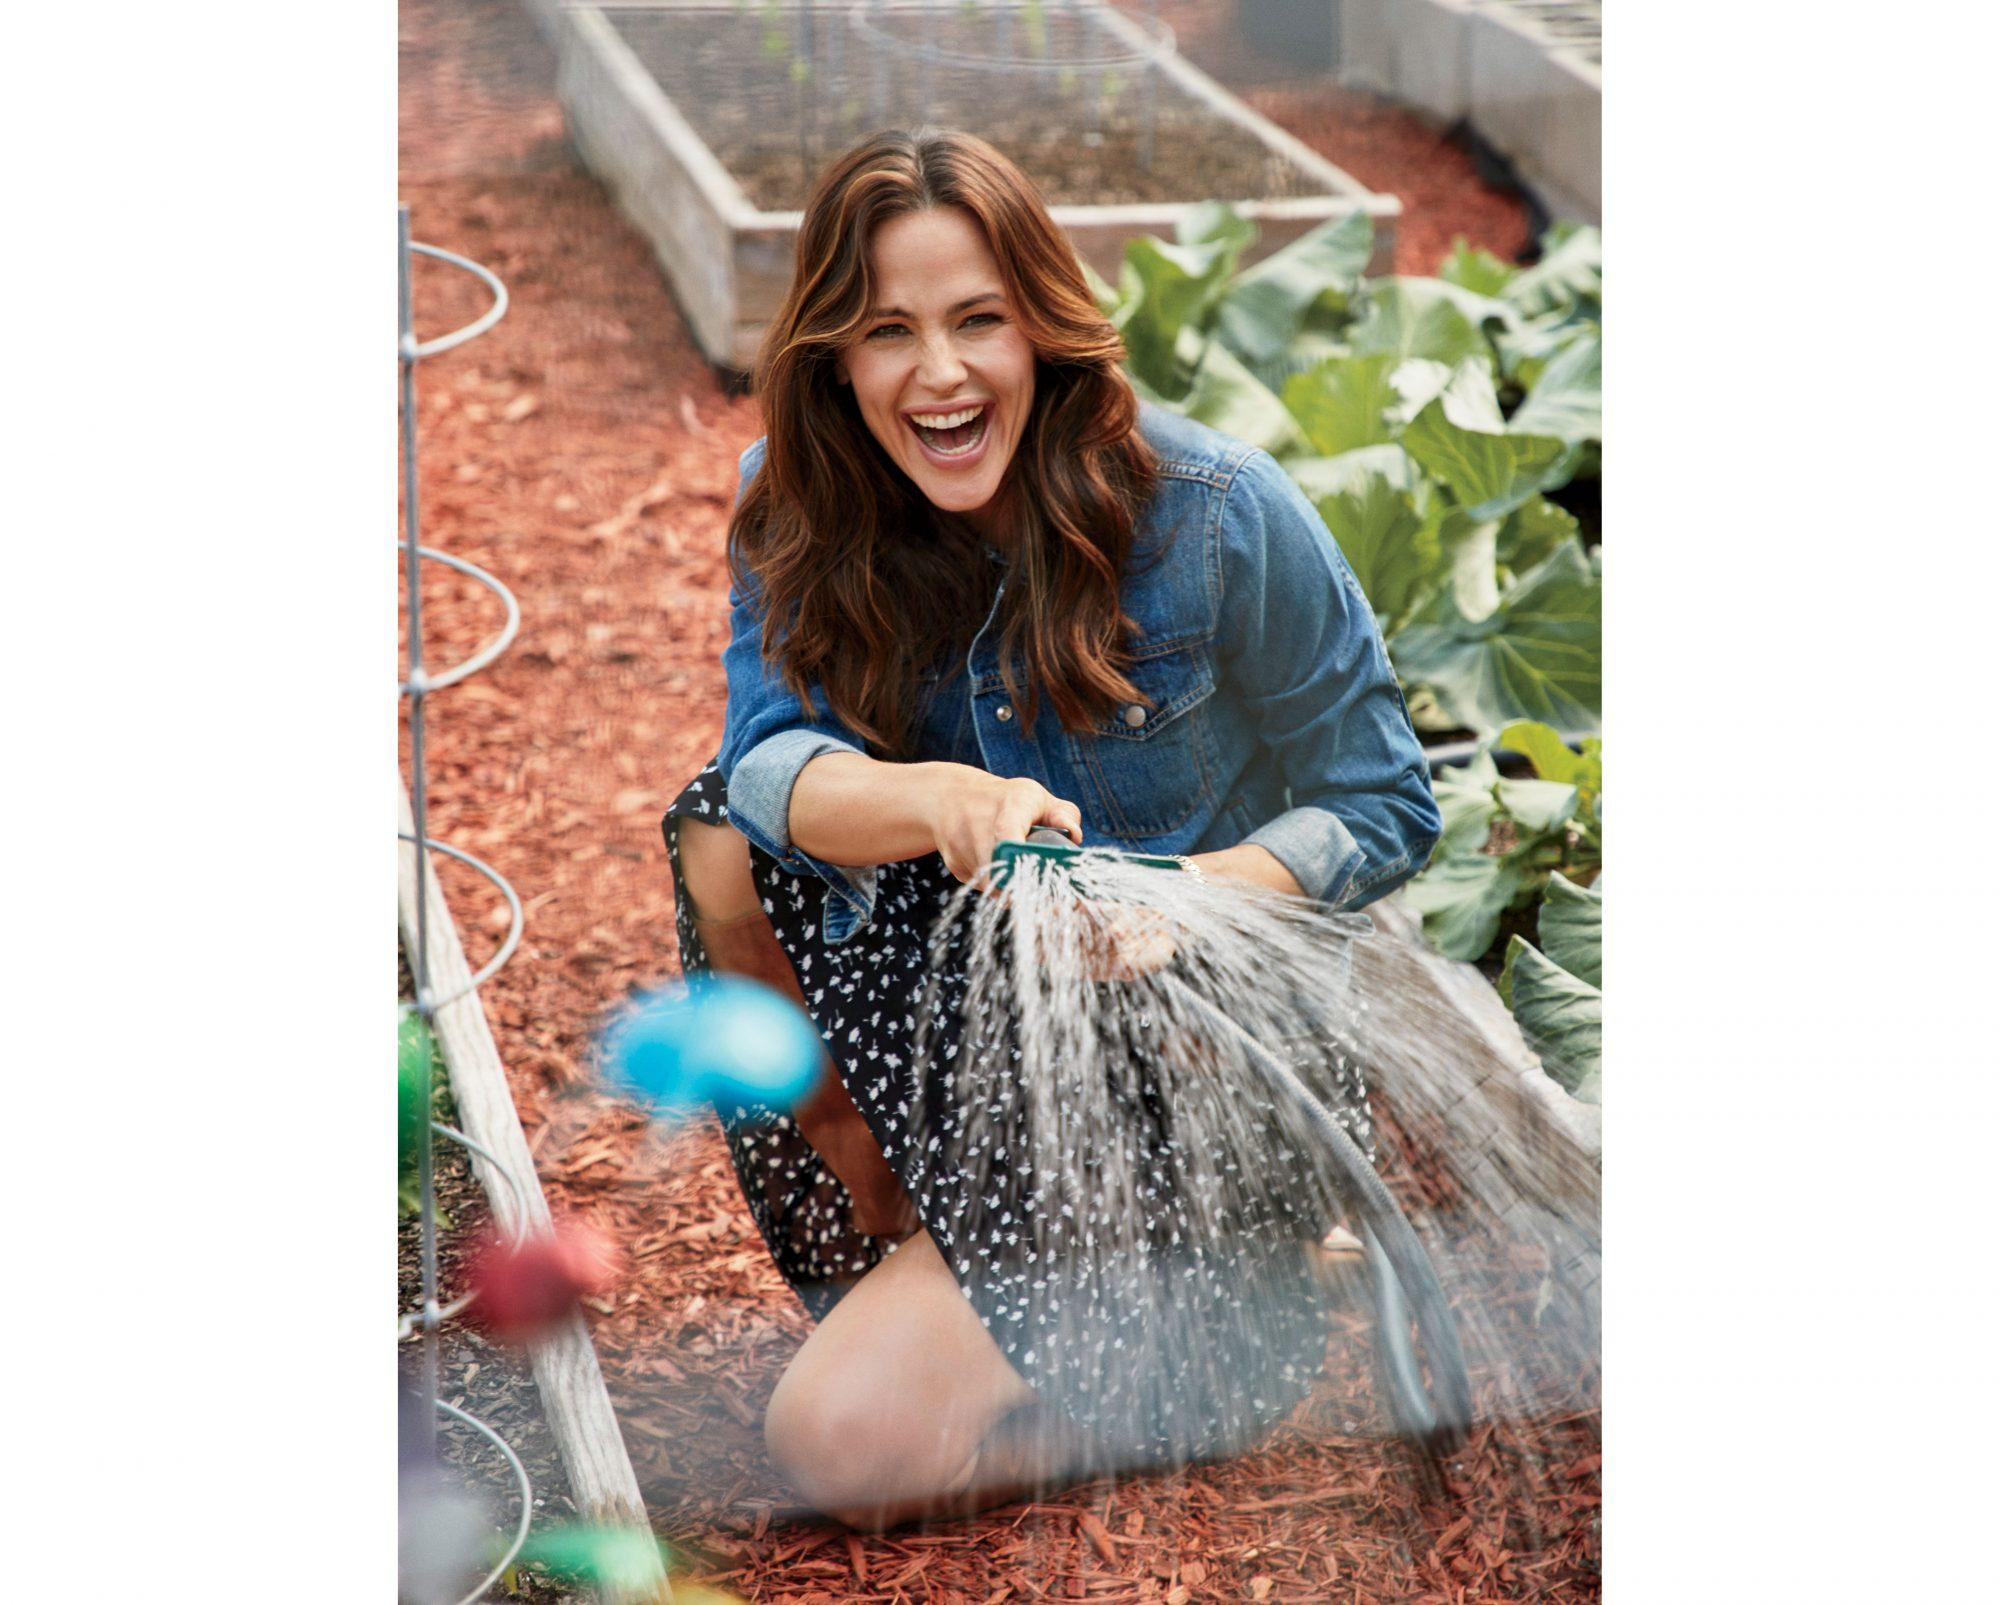 Jennifer Garner in the Vegetable Garden